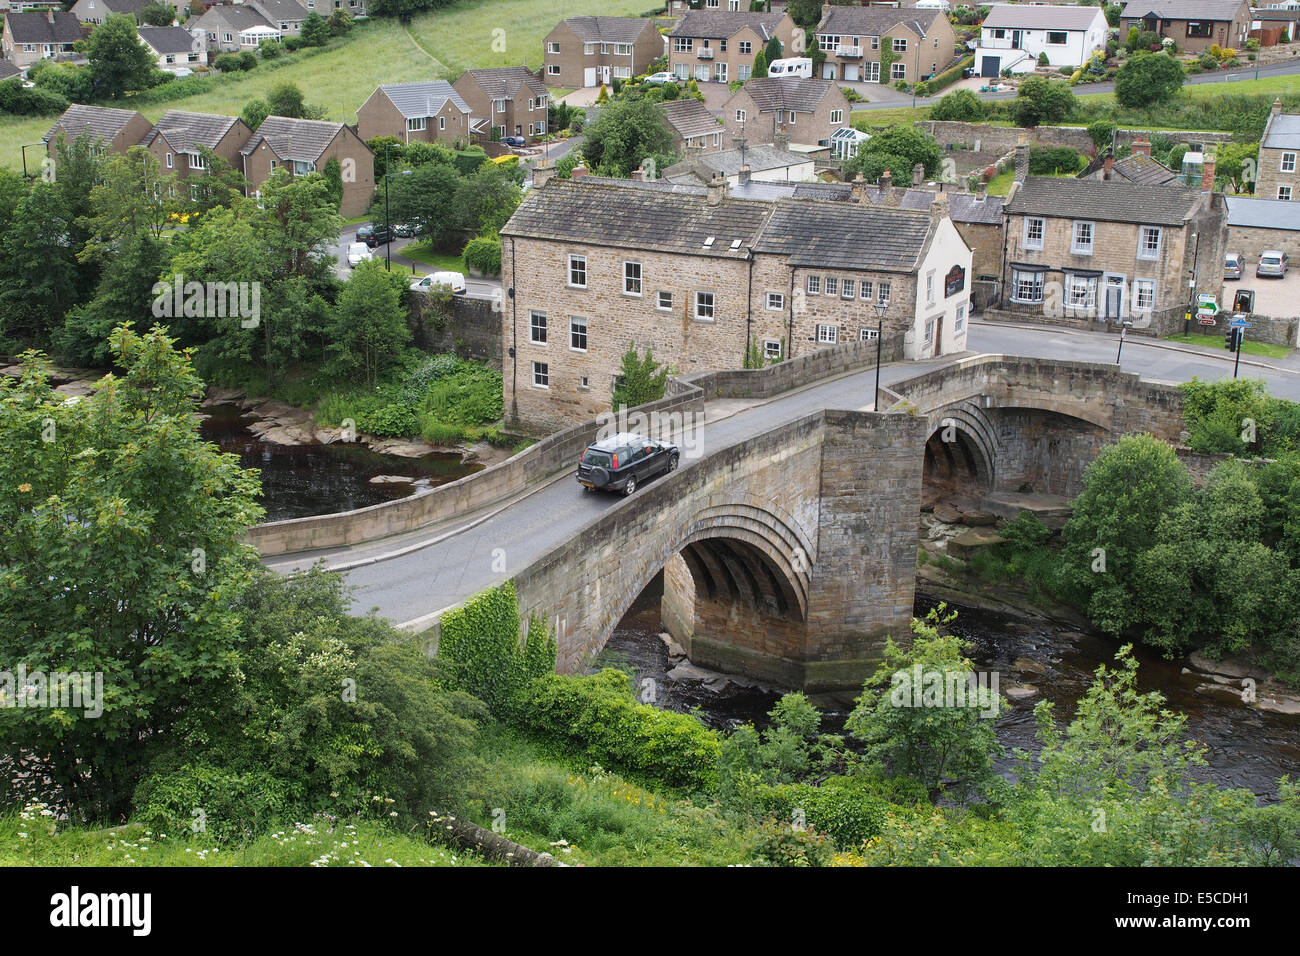 The bridge over the River Tees at Barnard Castle in Teesdale, England. - Stock Image